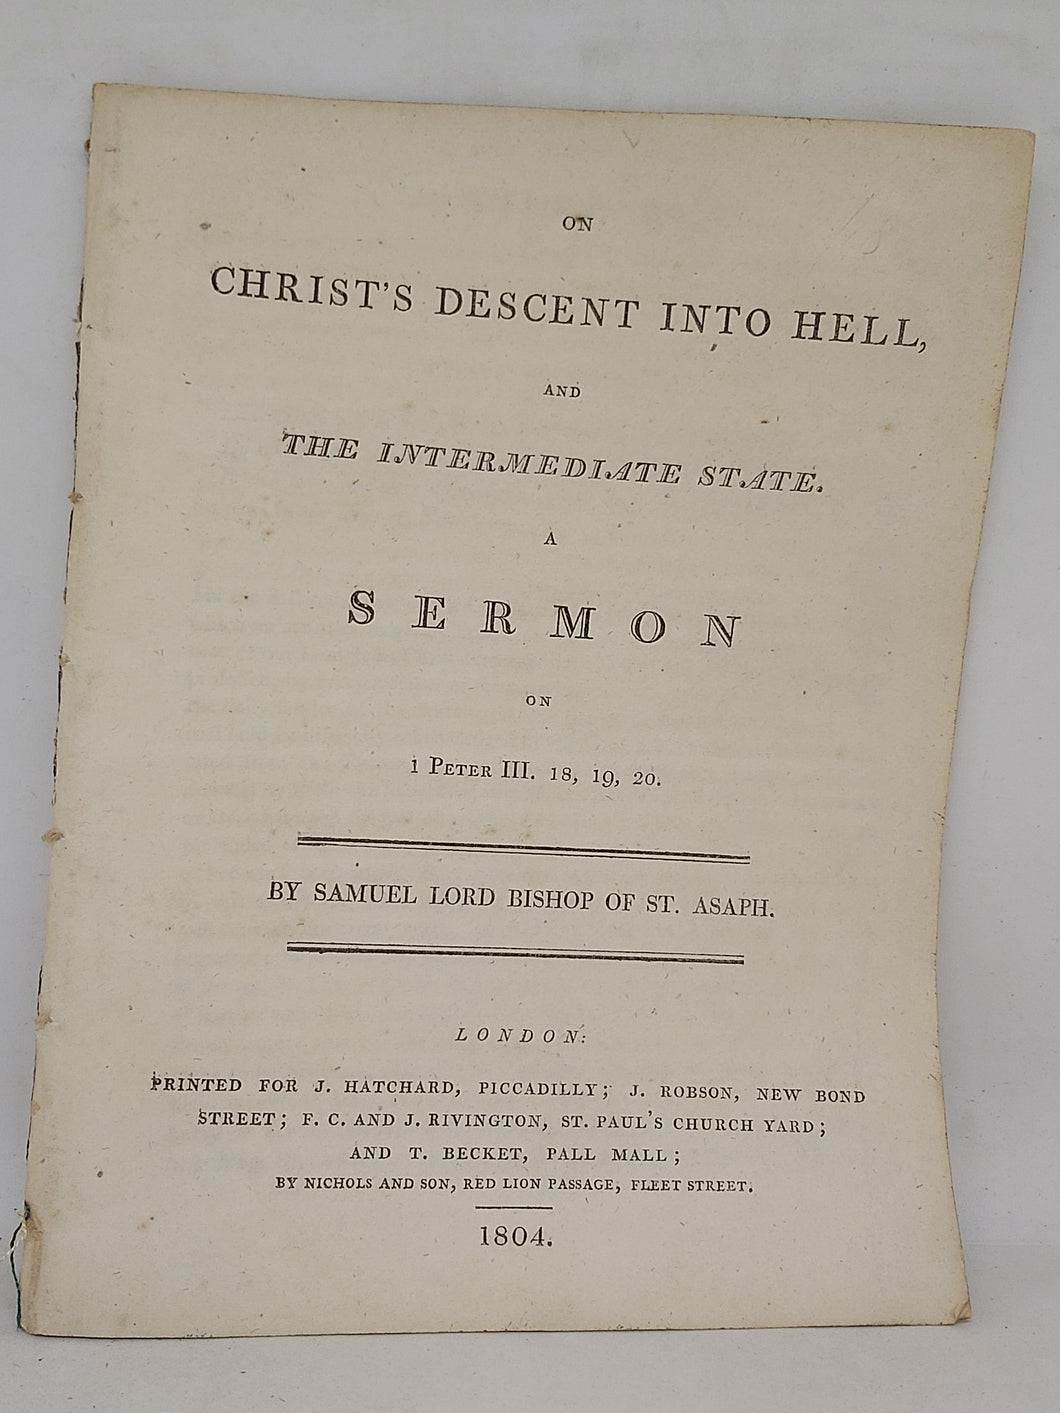 On Christ's descent into hell & the intermediate state, a sermon on 1 Peter III. 18, 19, 20, 1804